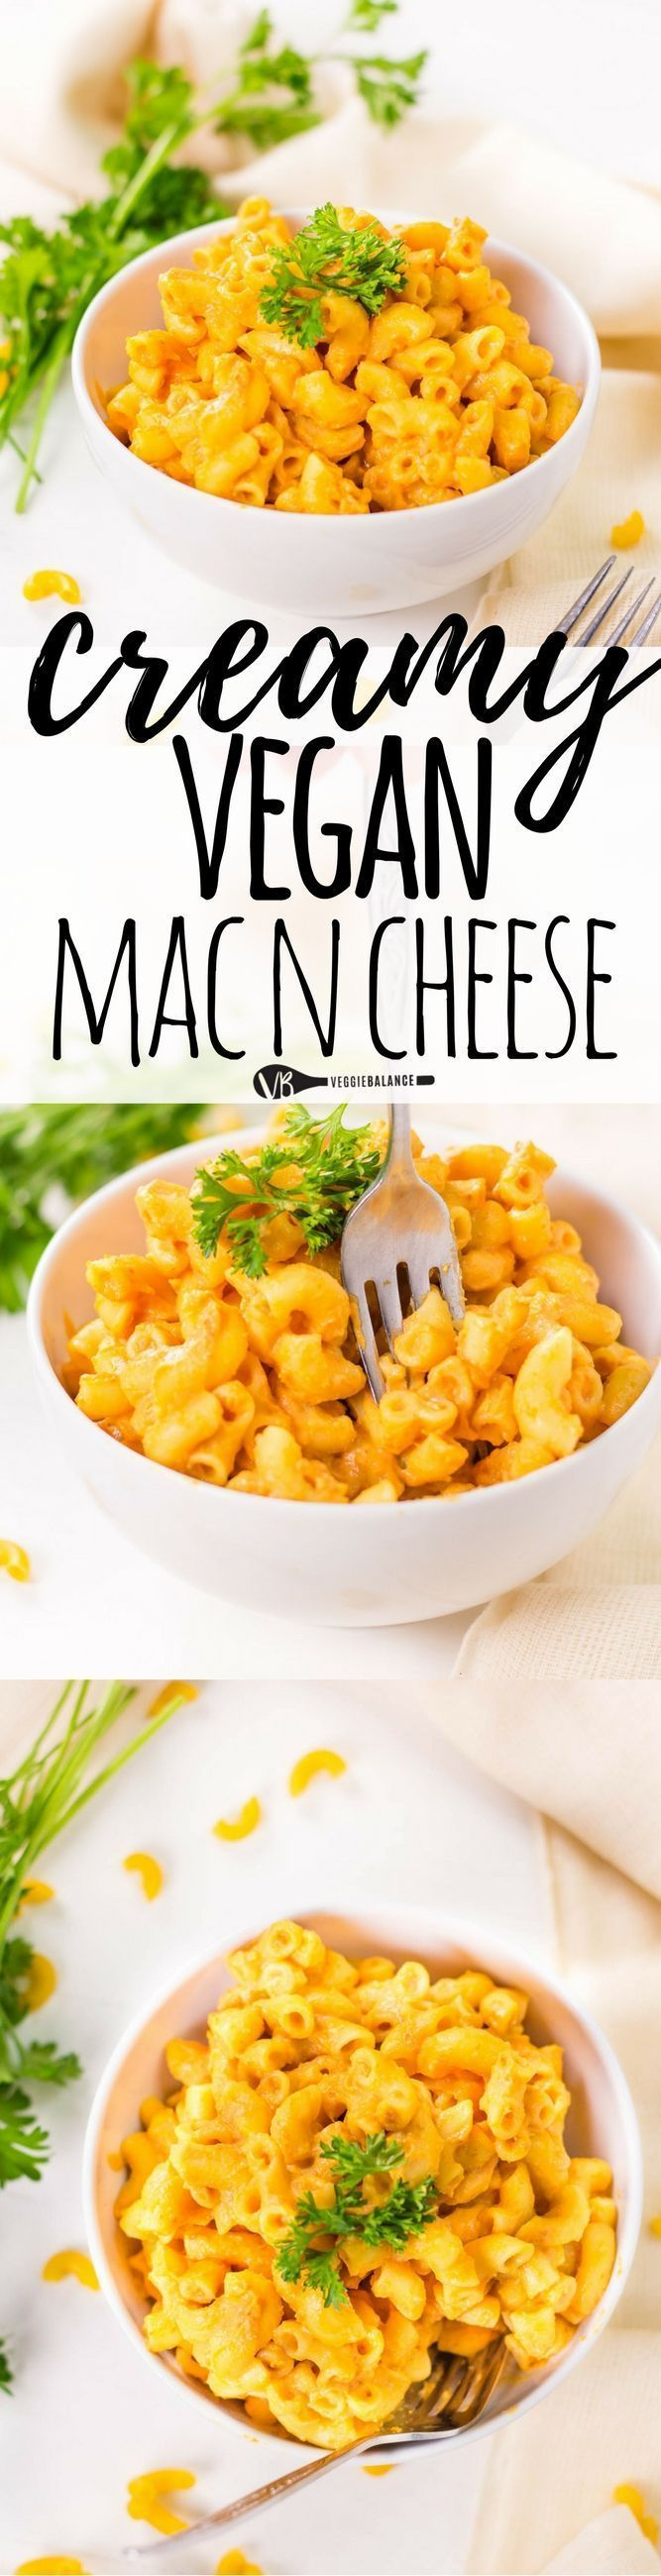 Creamy Vegan Mac and Cheese (Dairy-Free) - vegan mac and cheese recipe made with all-natural ingredients! in no time you'll have healthy and homemade vegan mac and cheese hot and ready. (gluten free, dairy free, vegan)